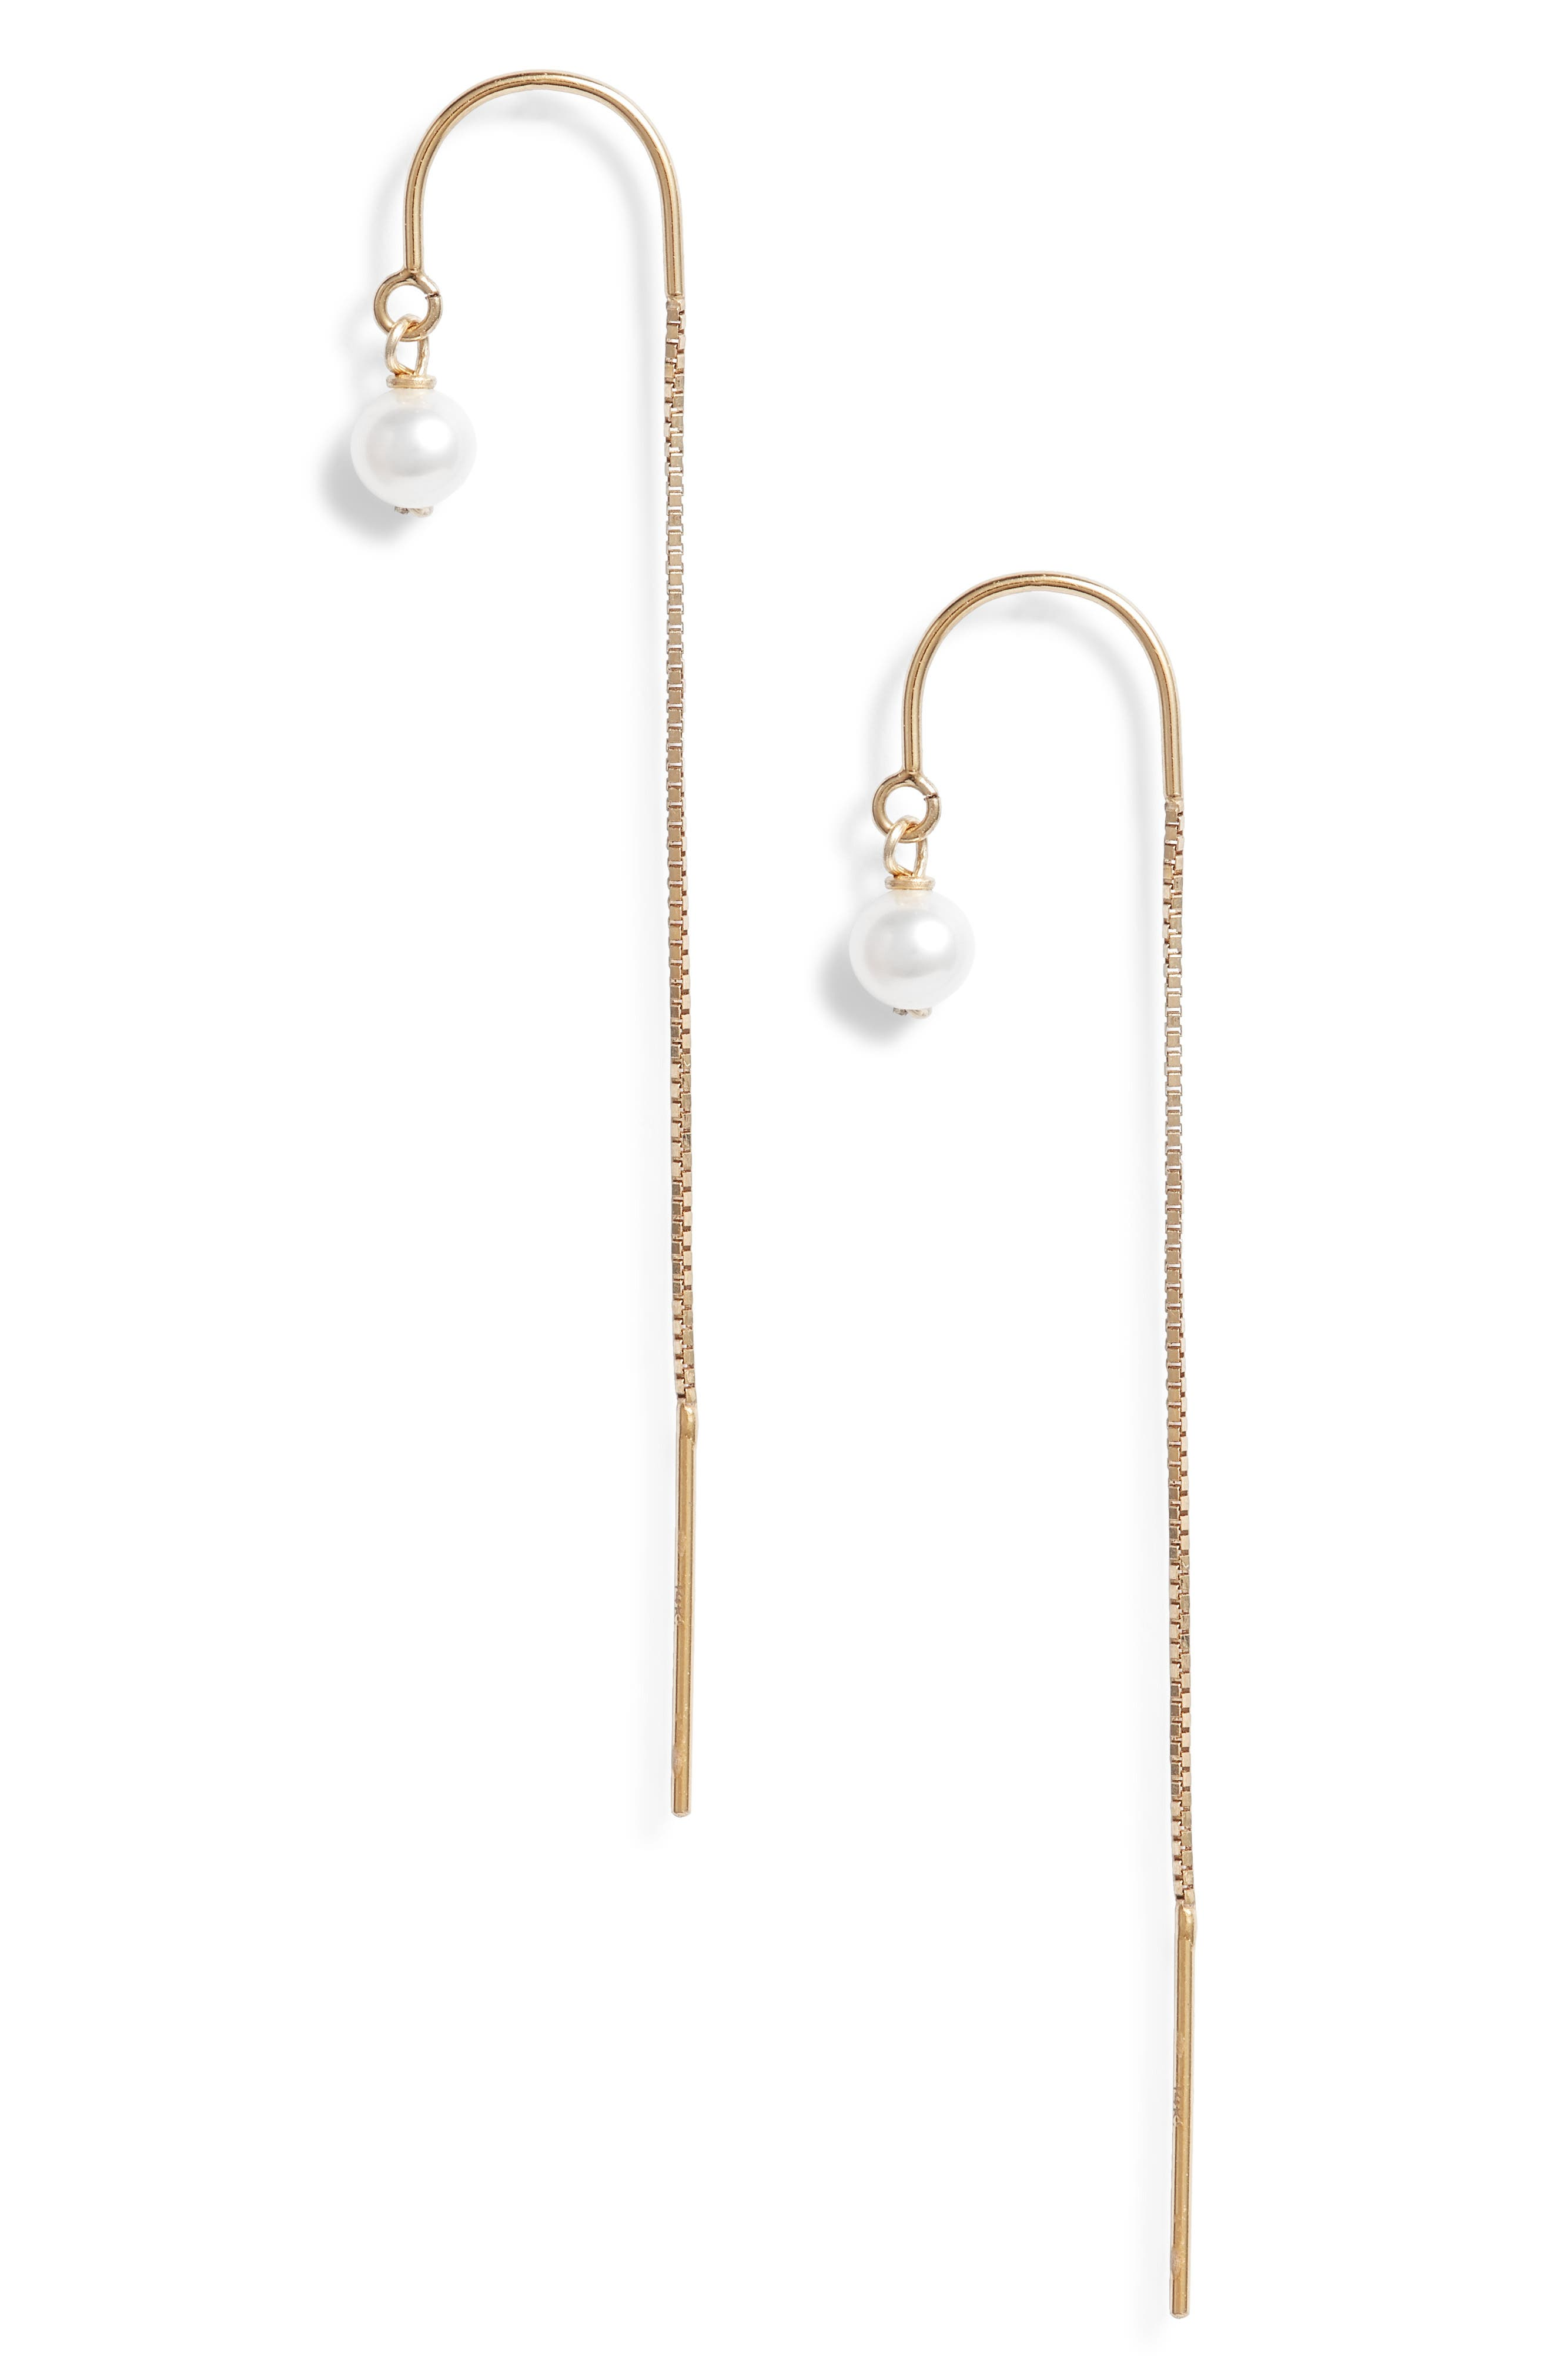 Tiny Pearl Threader Earrings,                             Main thumbnail 1, color,                             Yellow Gold/ White Pearl